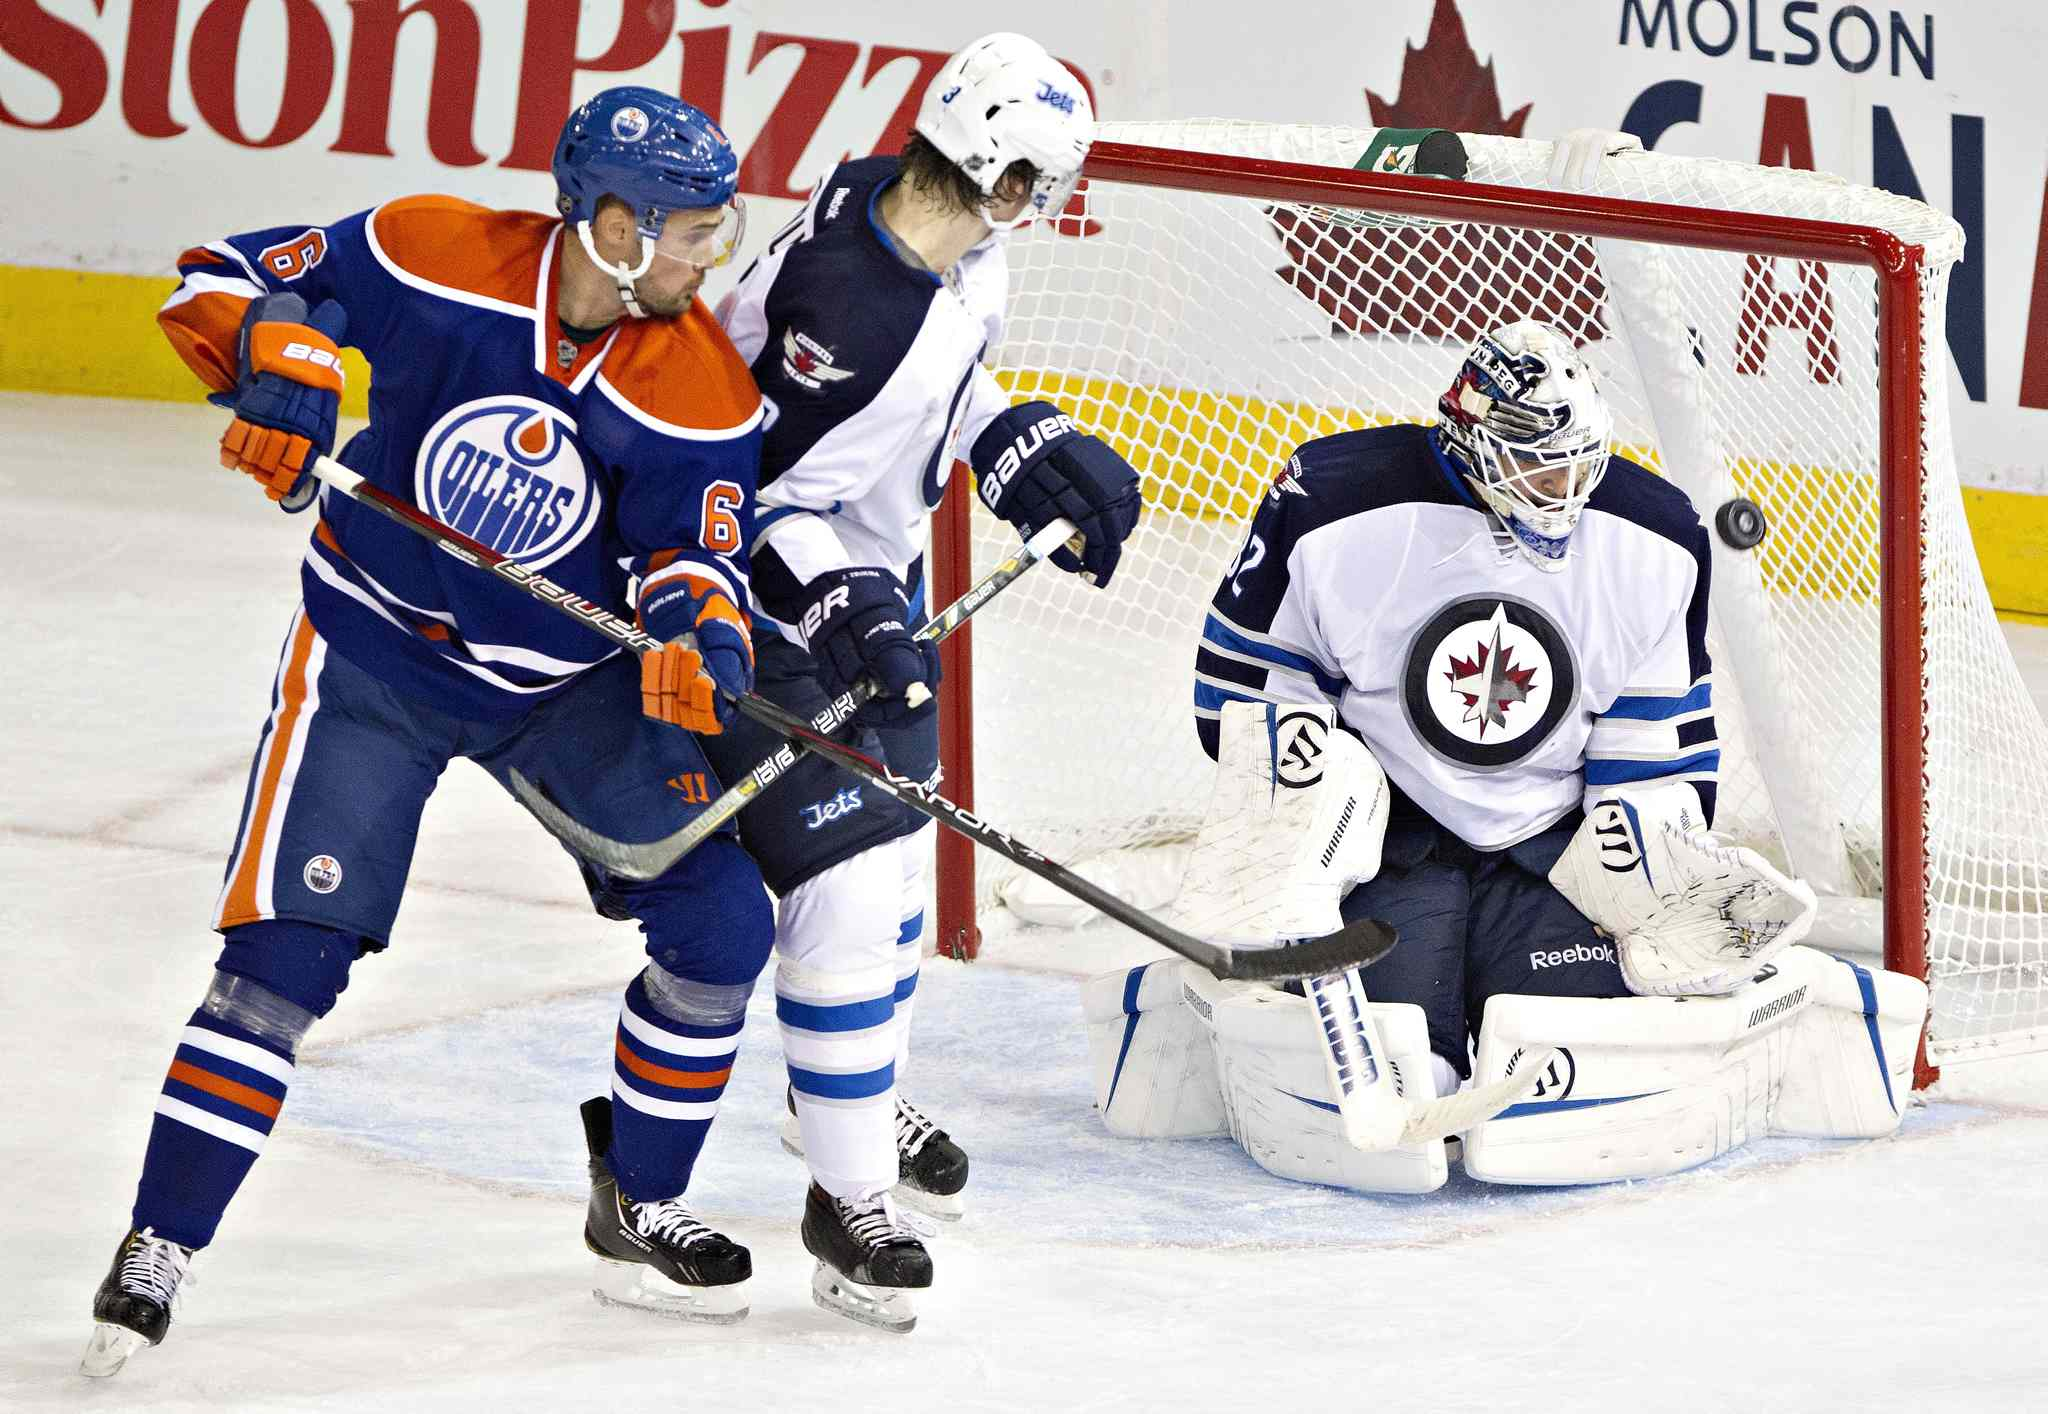 Winnipeg Jets goalie Edward Pasquale (32) makes a save as Jacob Trouba (3) and Edmonton Oilers Jesse Joensuu (6) battle in front during the second period.